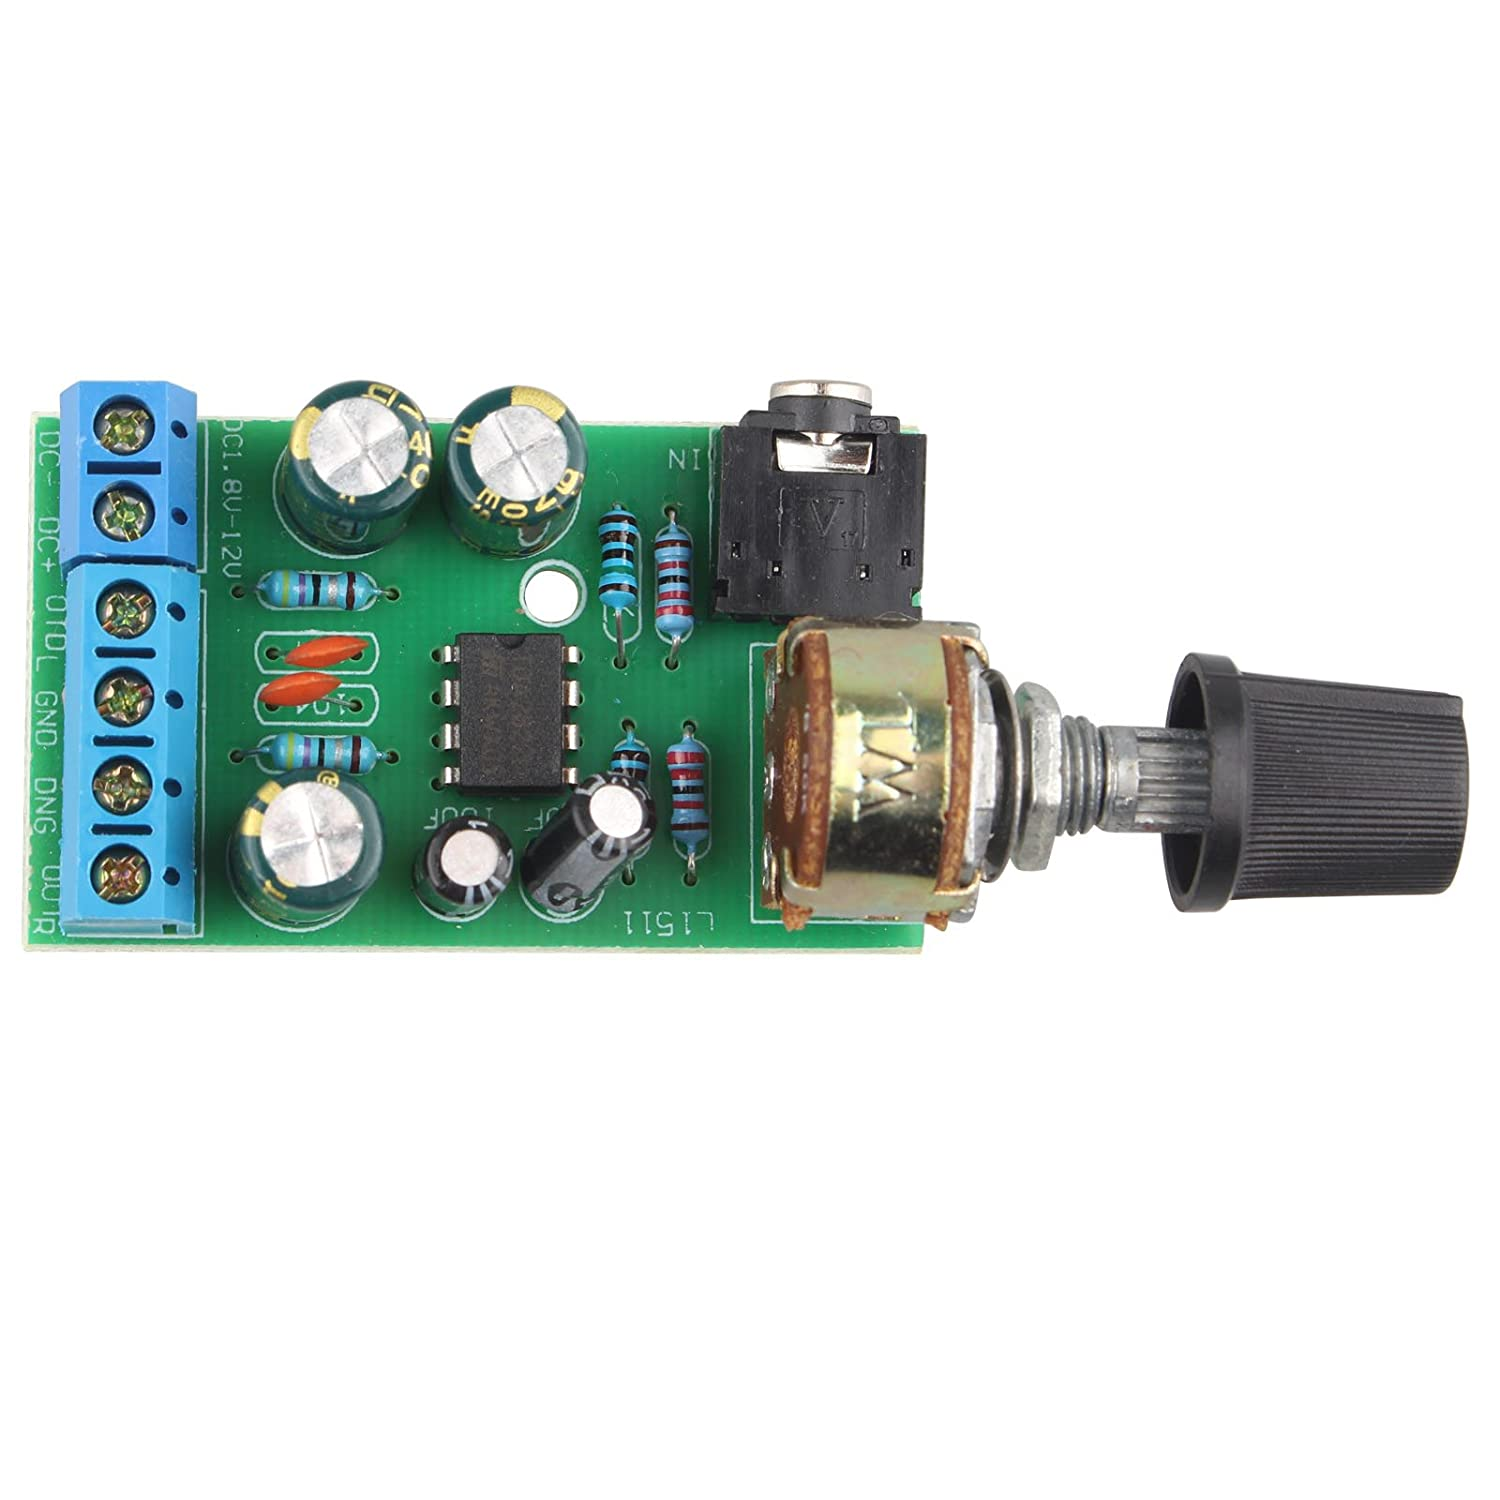 Dc18 12v Tda2822m Amplifier 2 Channels Stereo 35mm Amp Channel Subwoofer Audio Circuit Board Mini Aux Module Car Electronics